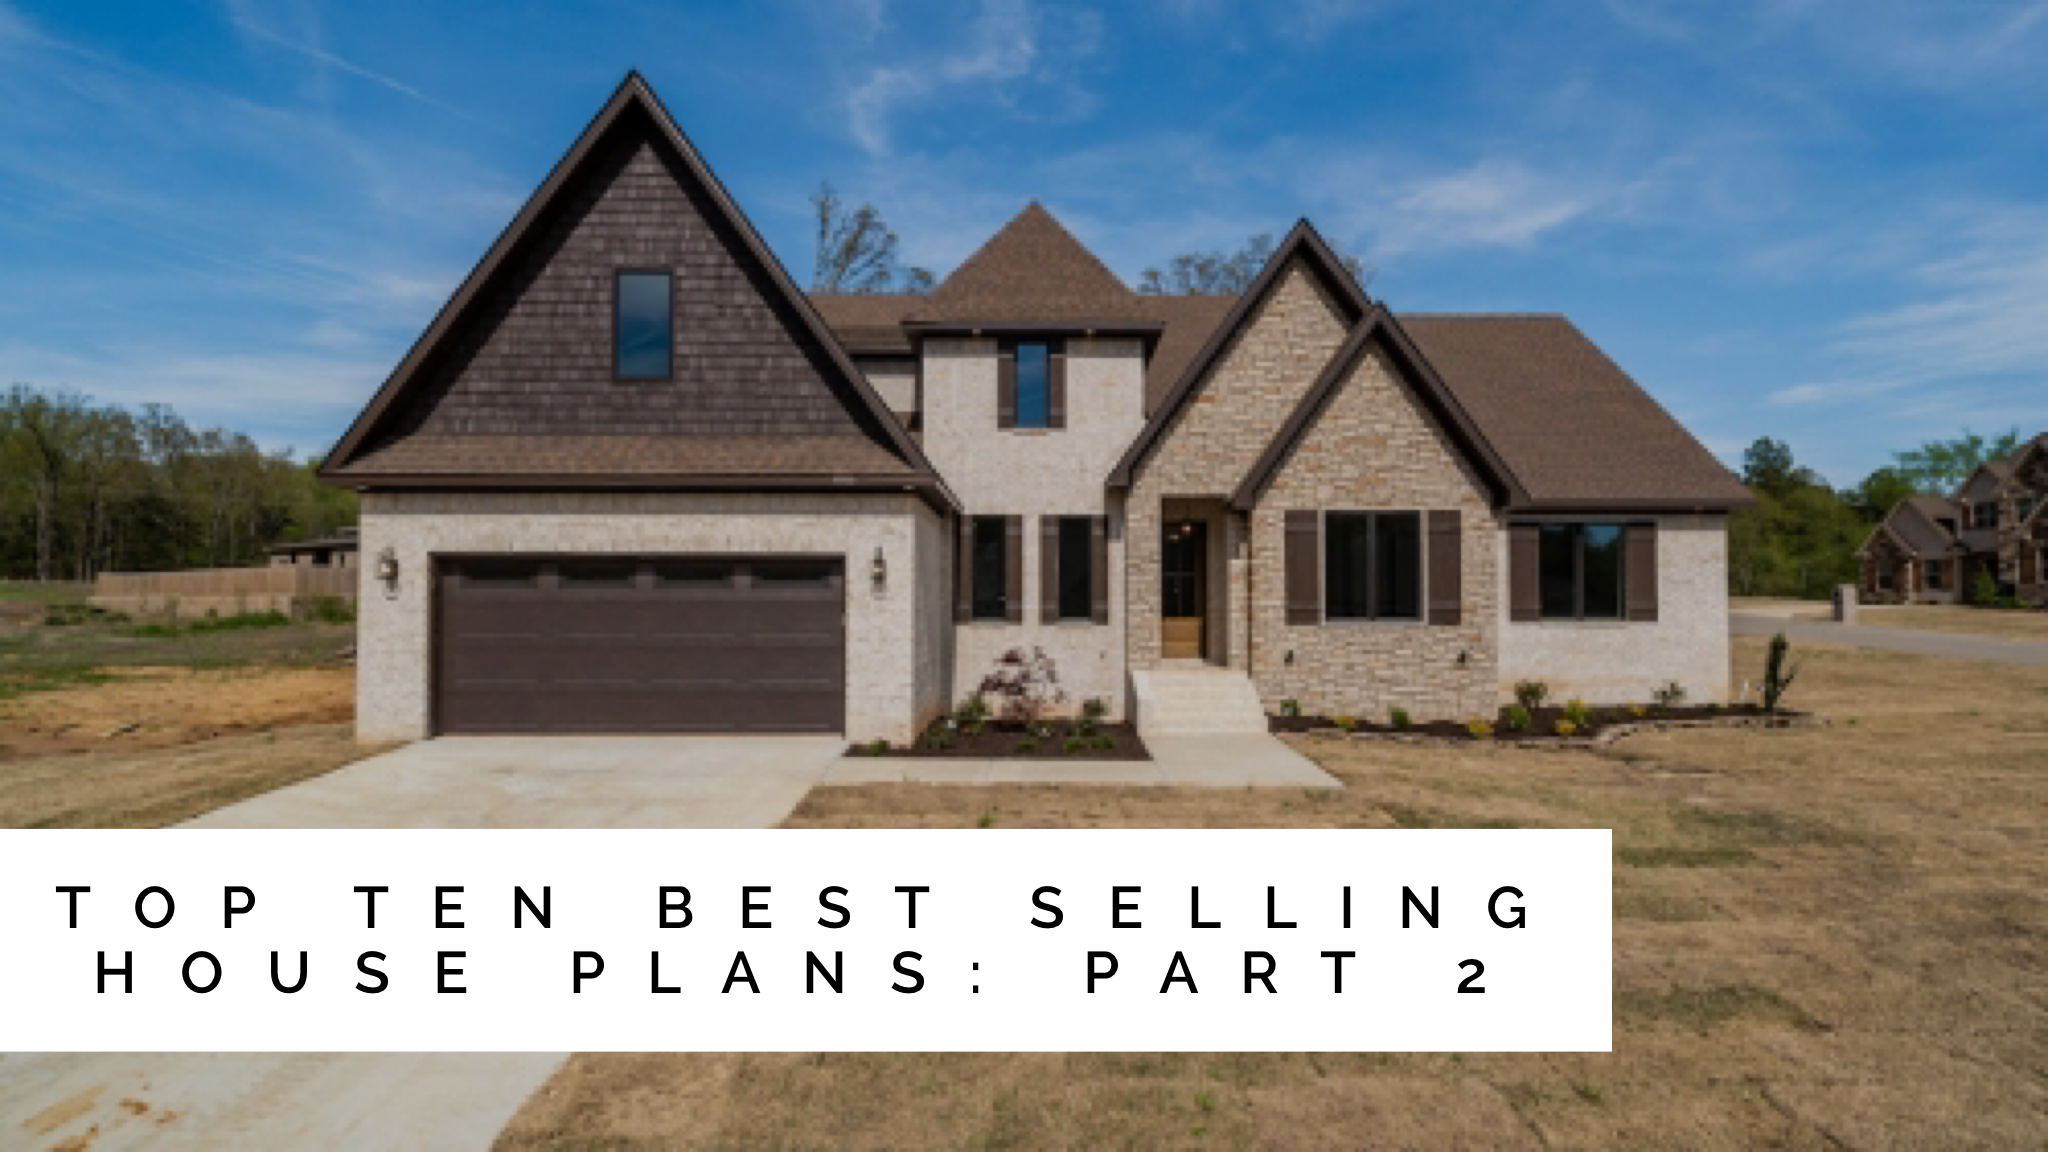 Top Ten Best Selling House Plans Of 2018 Part 2 Selling House House Plans Custom Home Plans